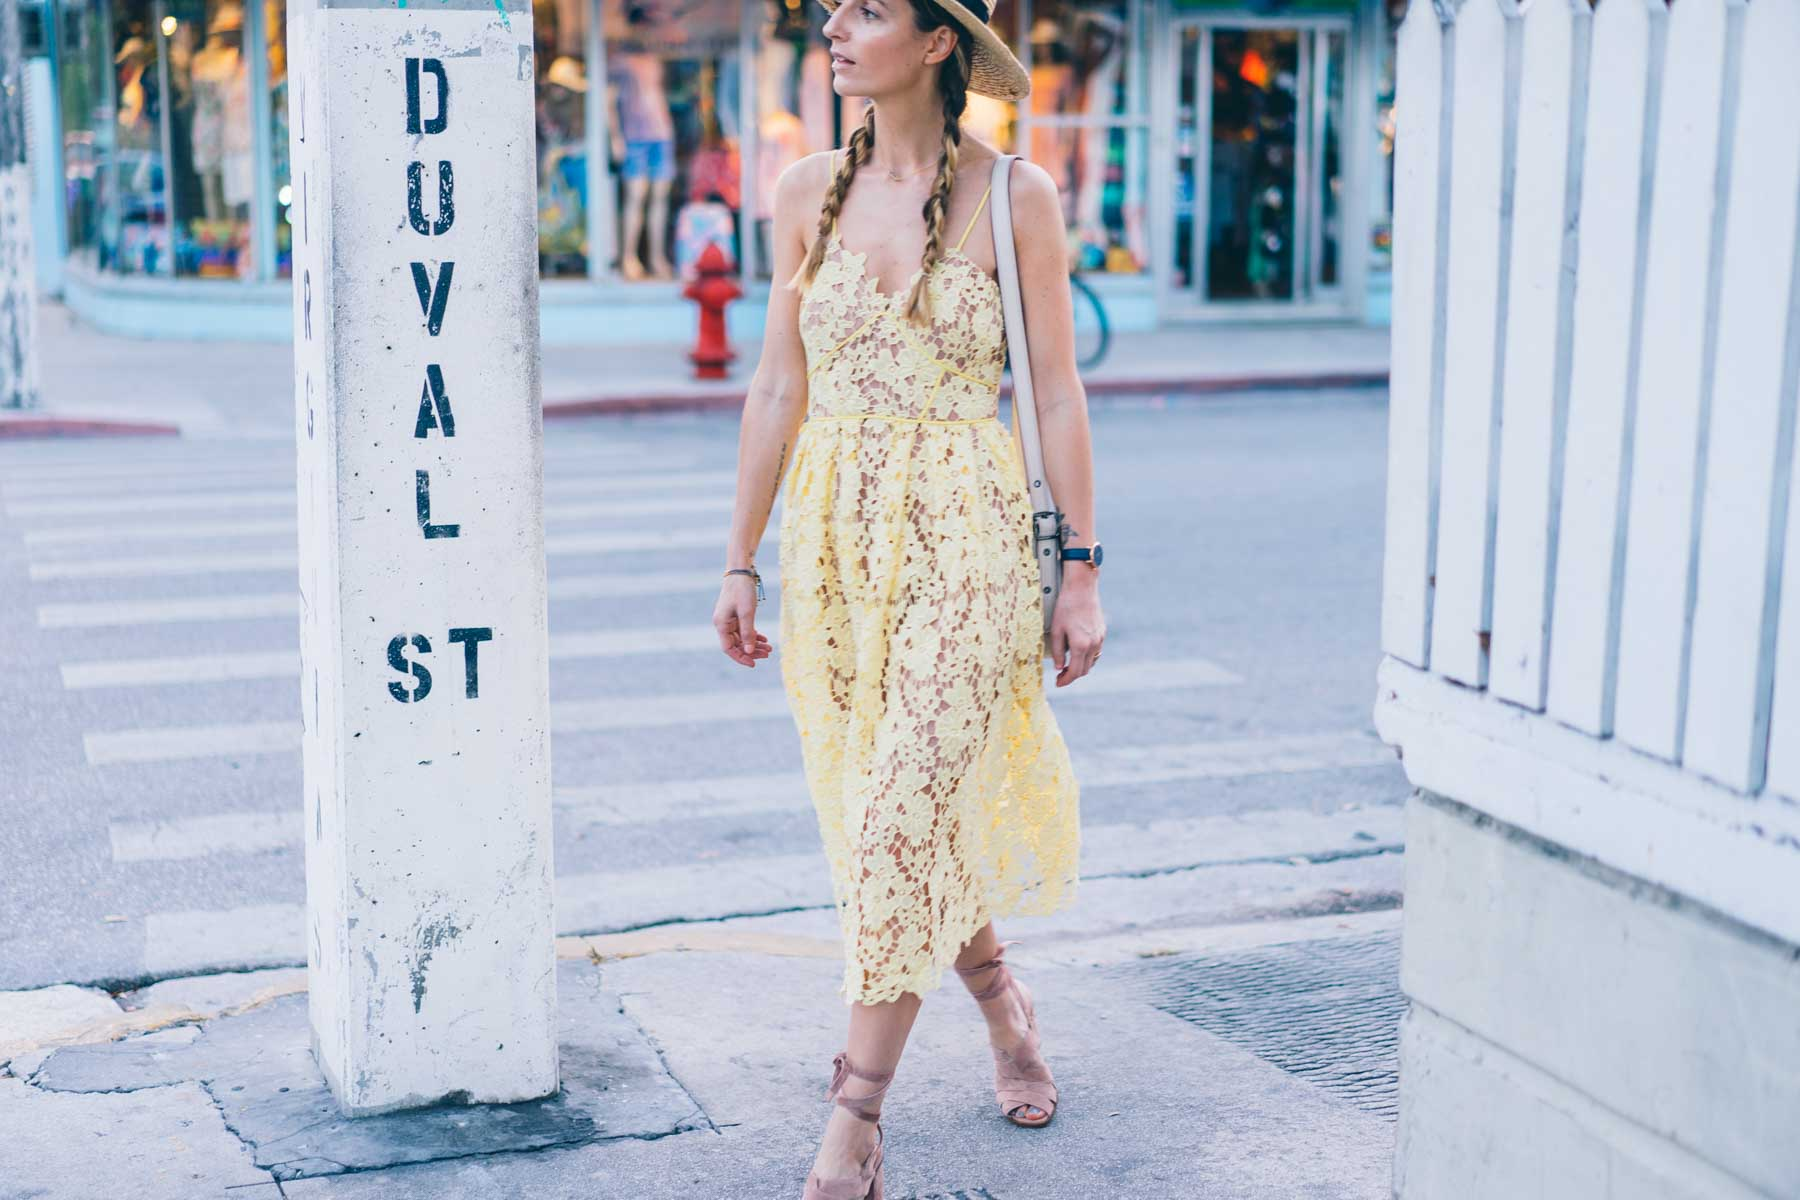 Jess Ann Kirby wears a yellow lace dress from Anthropologie in Key West